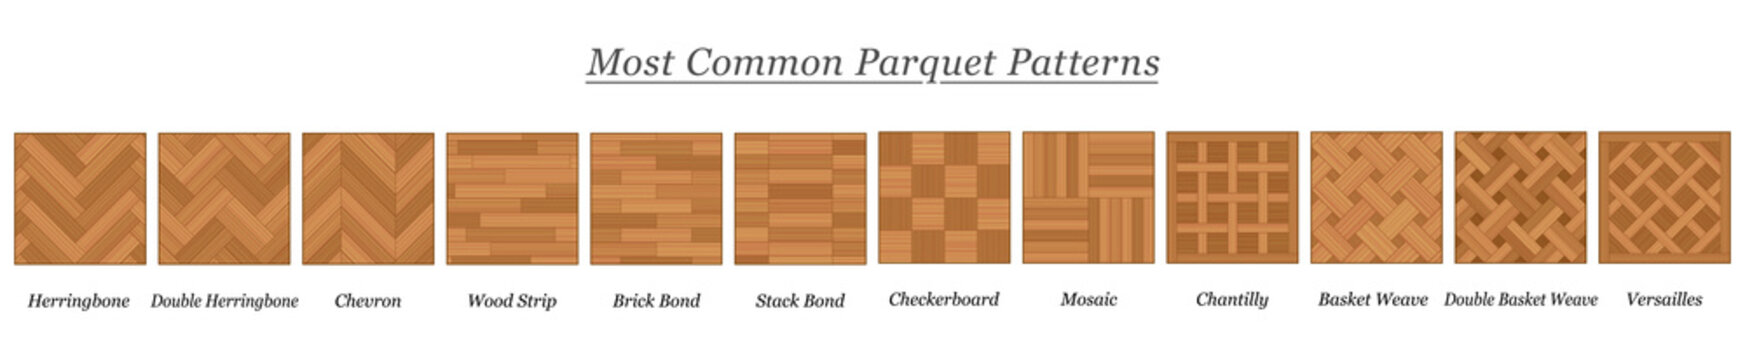 Most common parquet patterns, parquetry types and models, wooden floor plates with names - isolated vector illustration on white background.